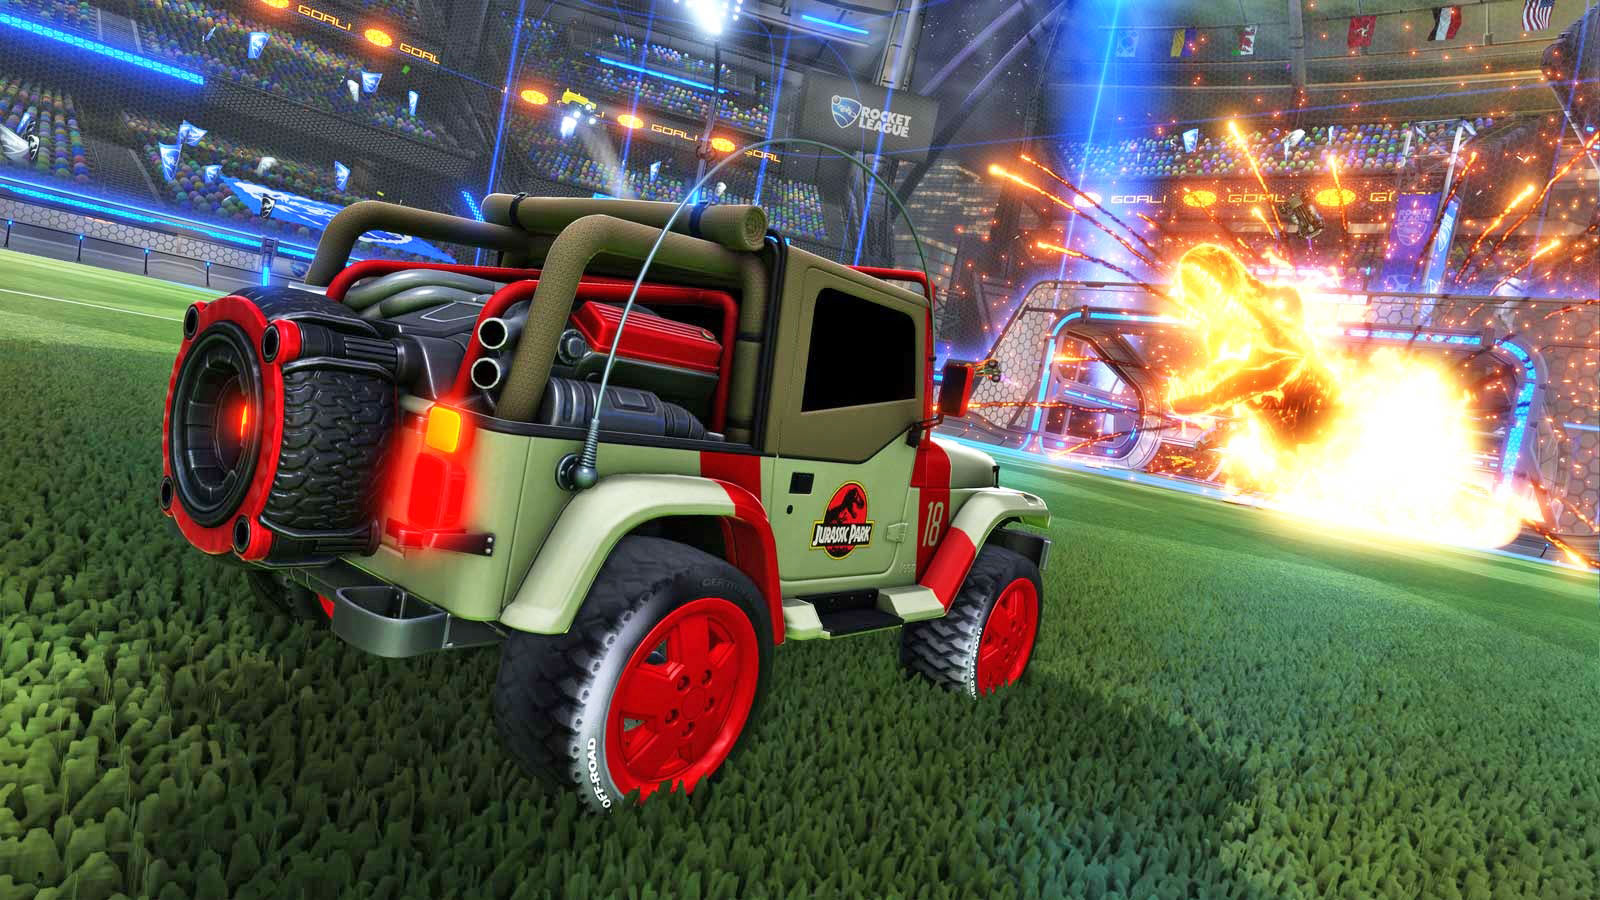 Rocket League's' next add-on is a 'Jurassic World' crossover